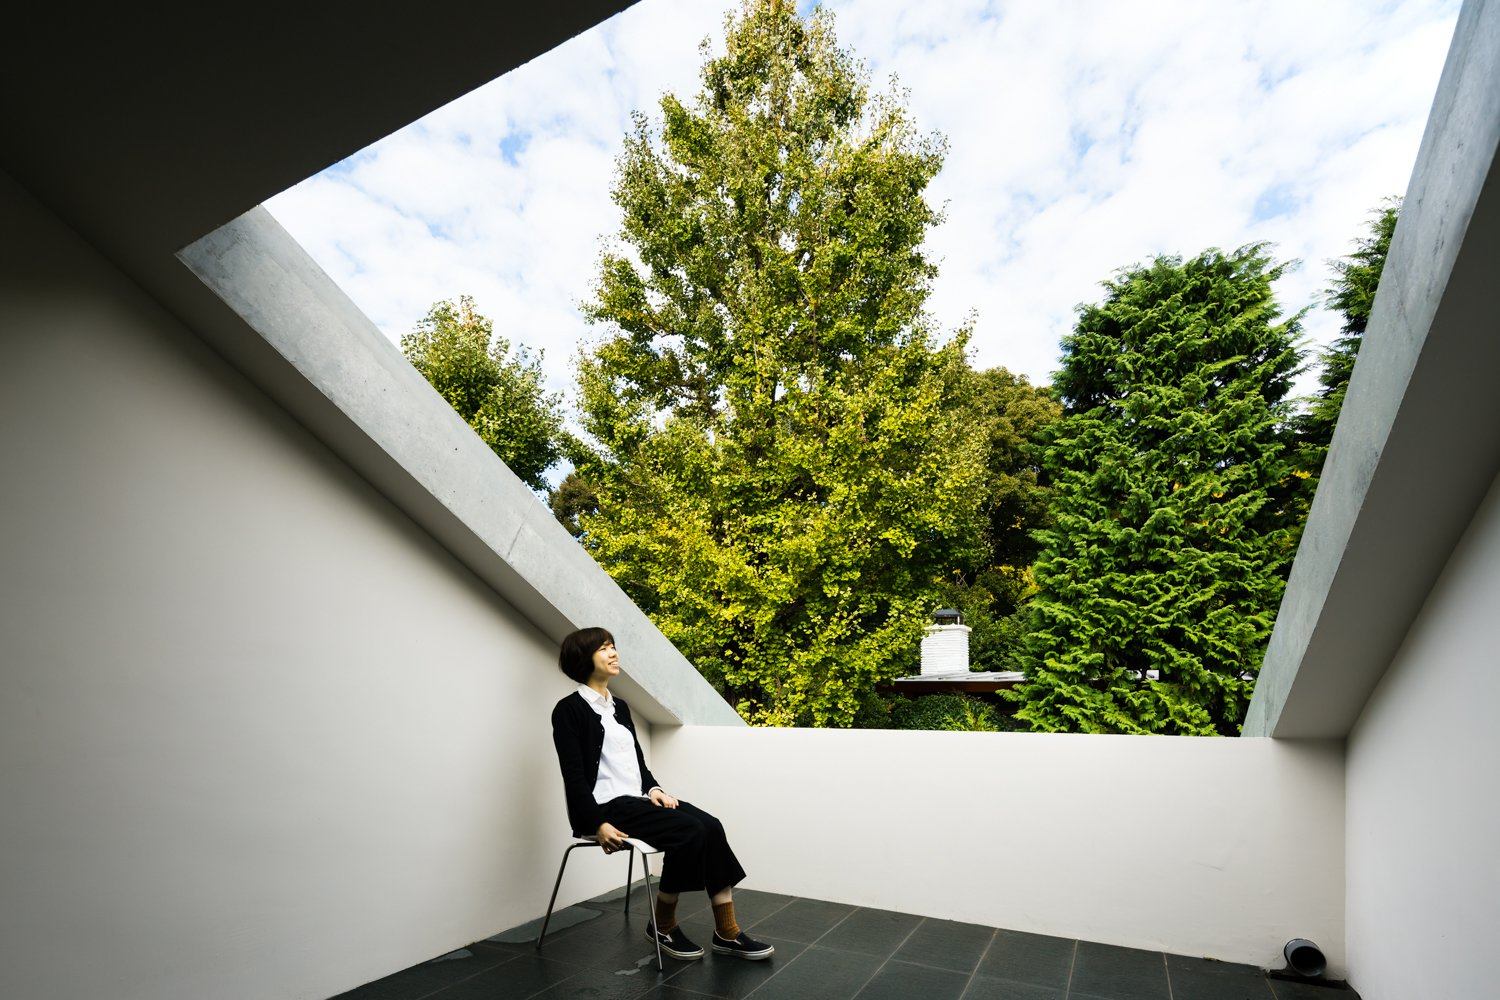 Tagged: Outdoor, Rooftop, Trees, Tile Patio, Porch, Deck, and Small Patio, Porch, Deck.  ROROOF vol.2 by Leibal